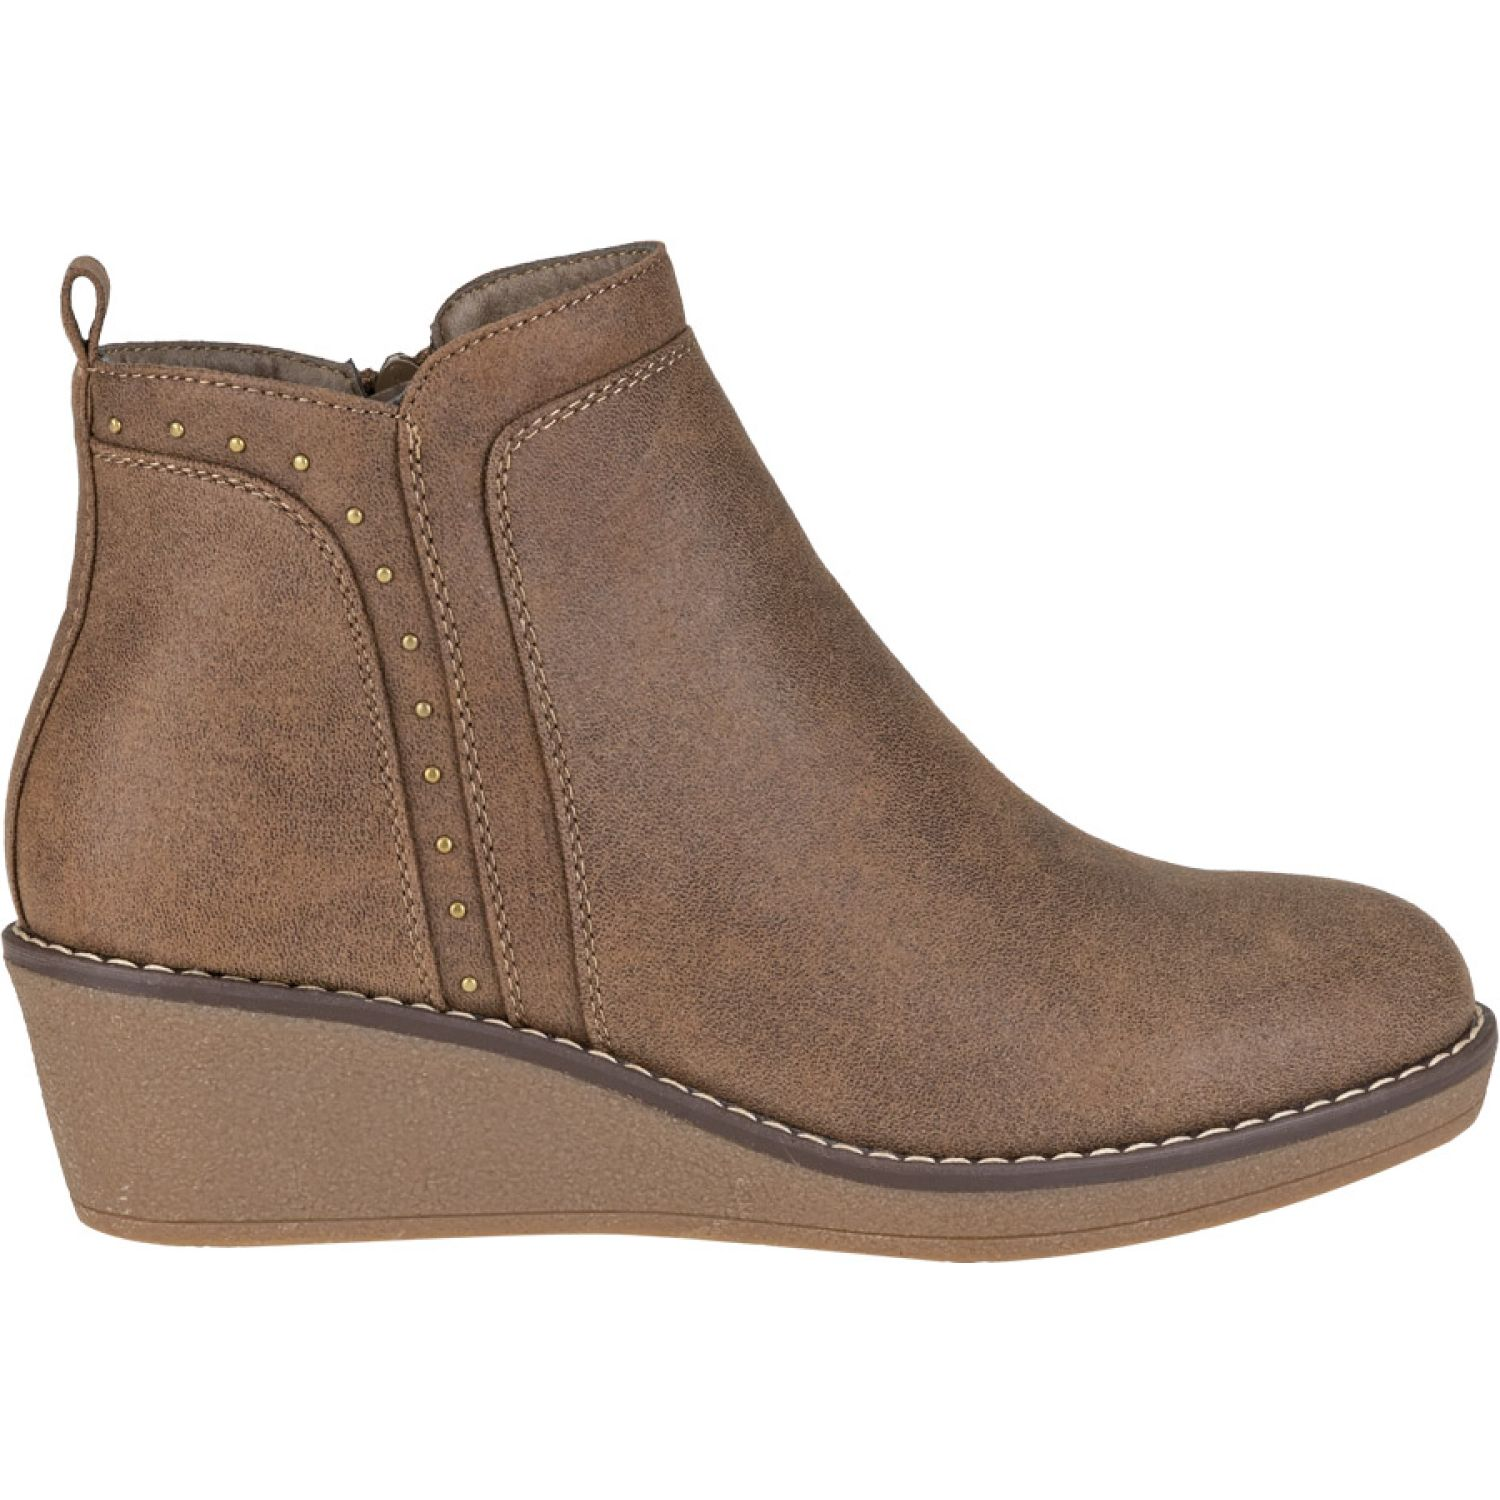 FOOTLOOSE Fch-Qb01i20 TAUPE Botines